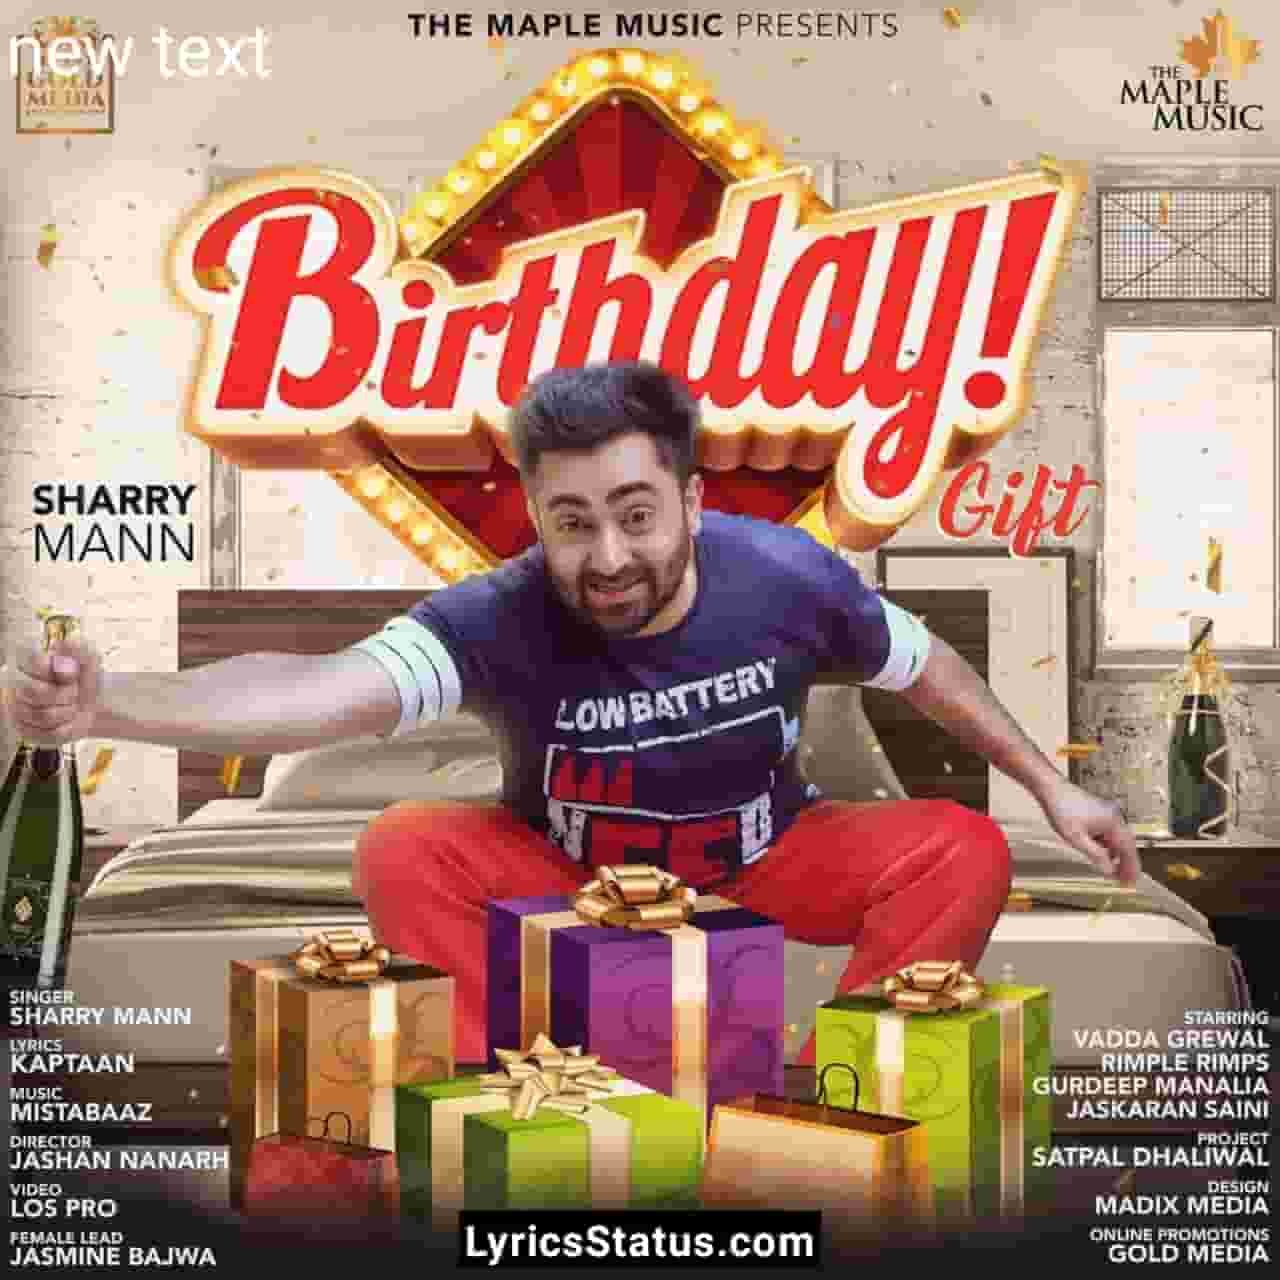 Sharry Maan Birthday Gift Lyrics Status Download Punjabi Song Kehndi birthday te ki gift kara Main kiha peti dede daaru di status Black Background